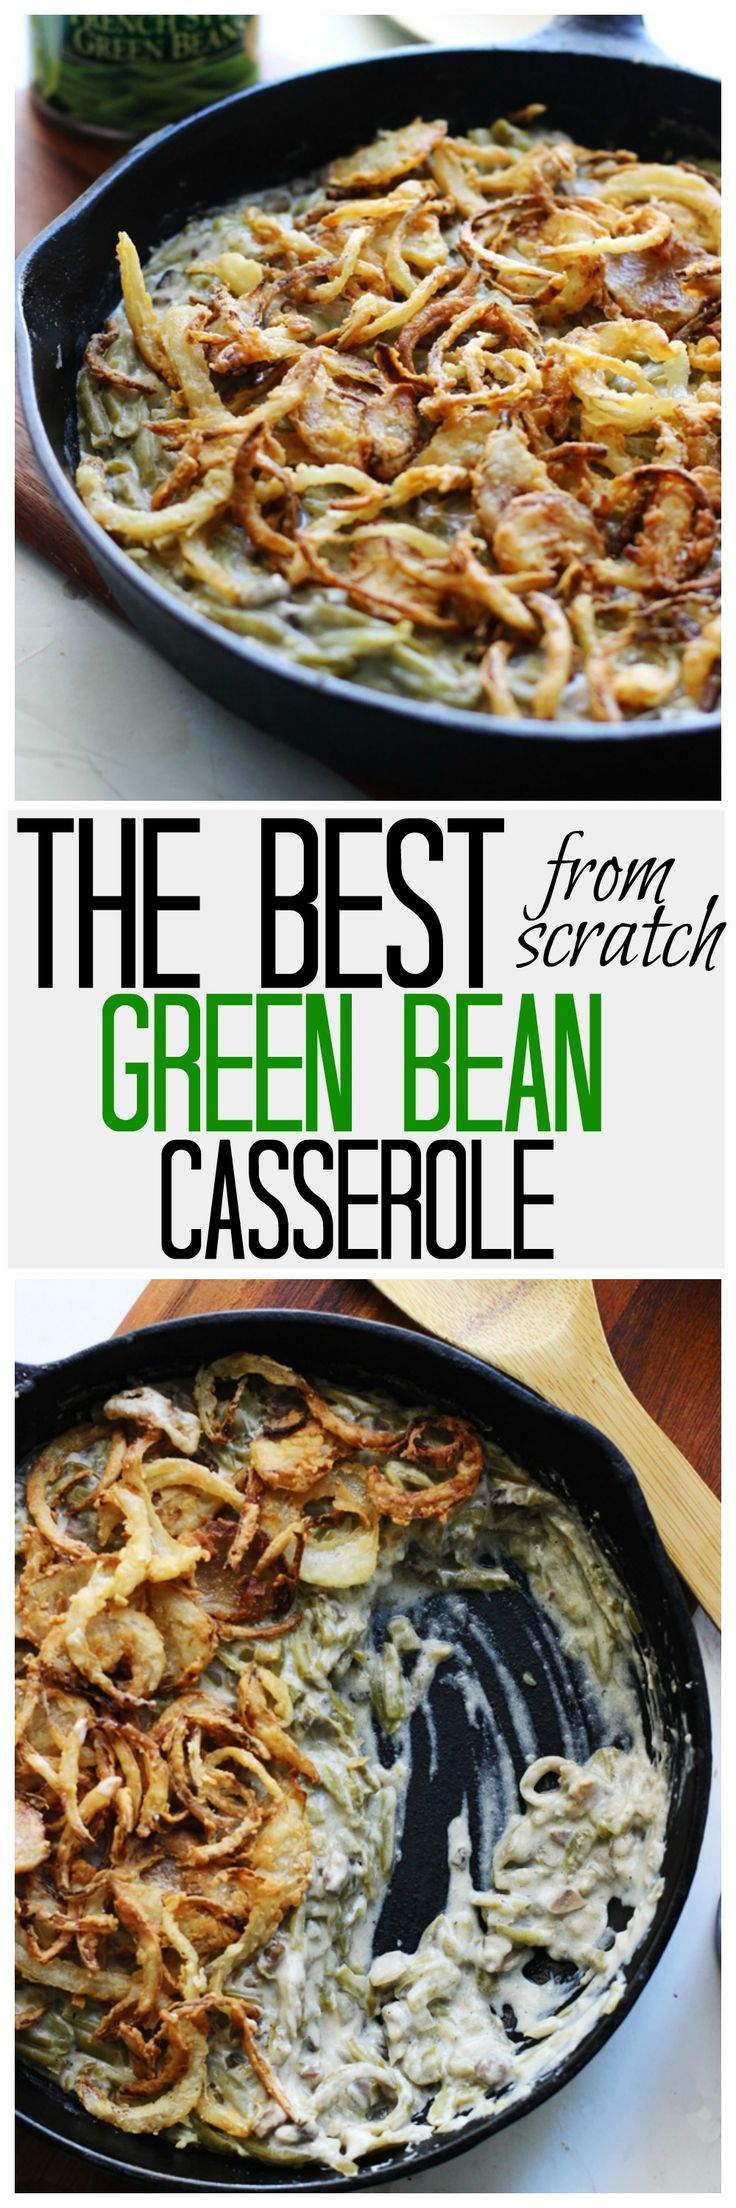 The BEST Green Bean Casserole - Made from scratch and 100x better than the canned version!